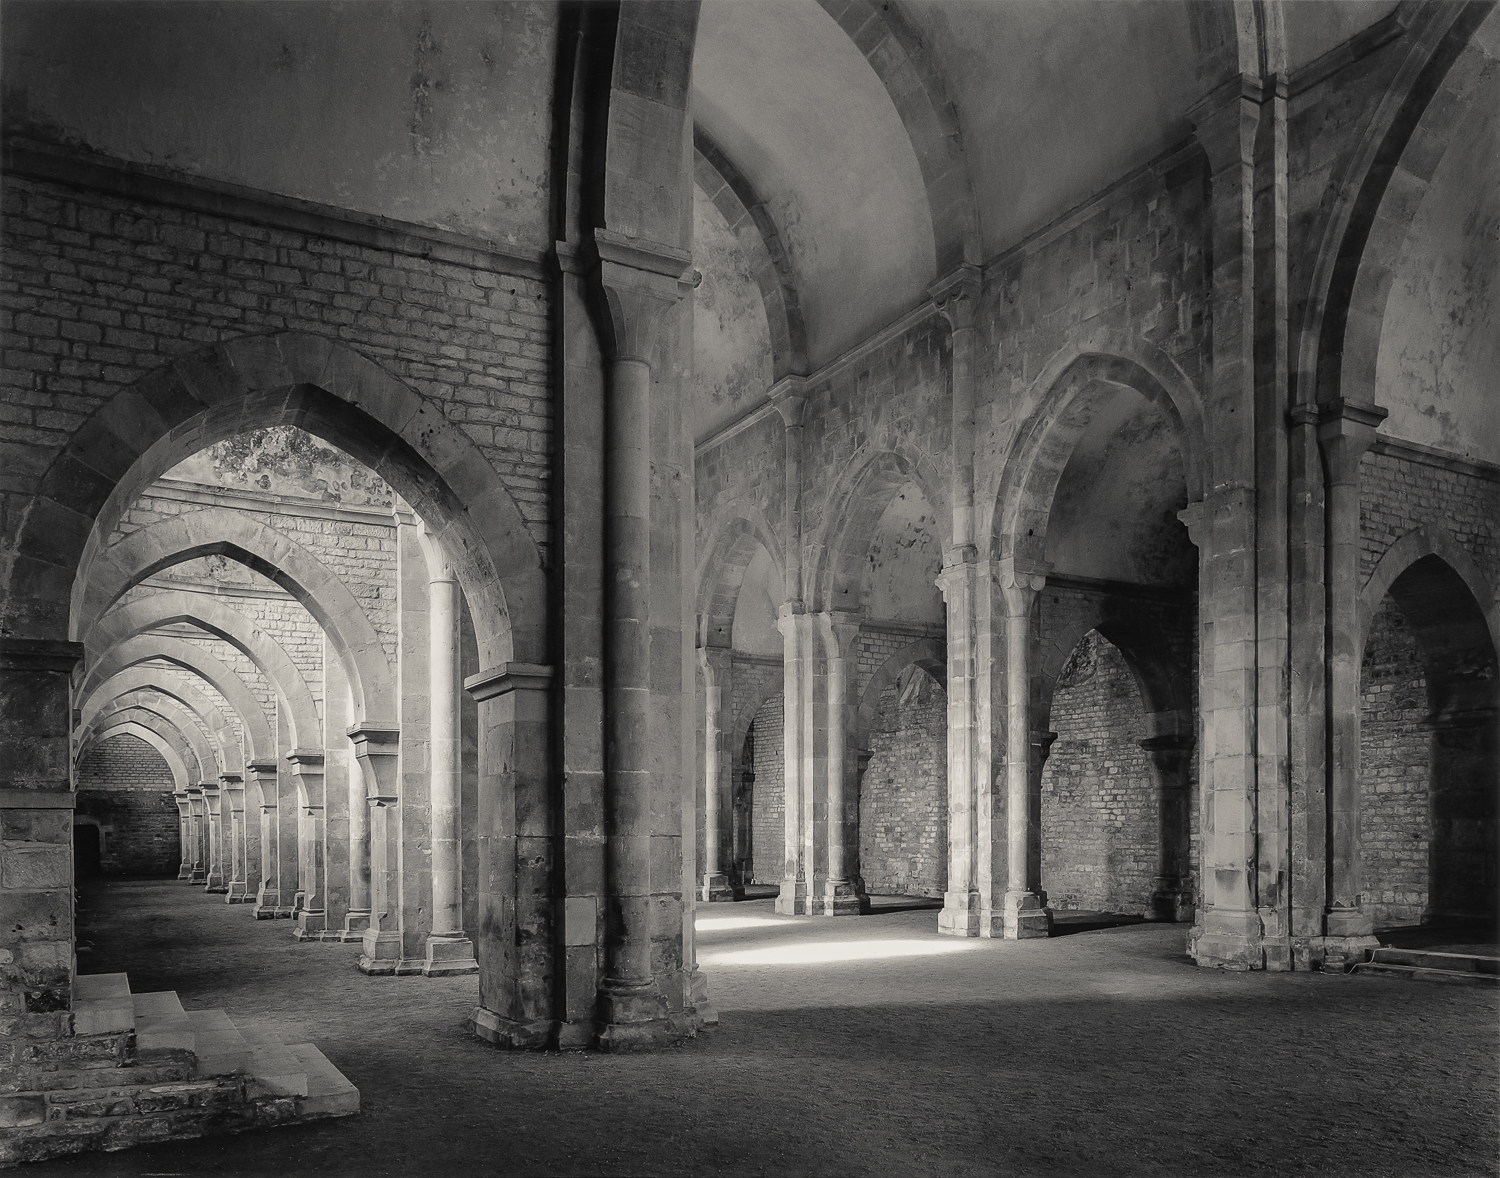 South Aisle and Nave Looking West, Fontenay, 1990